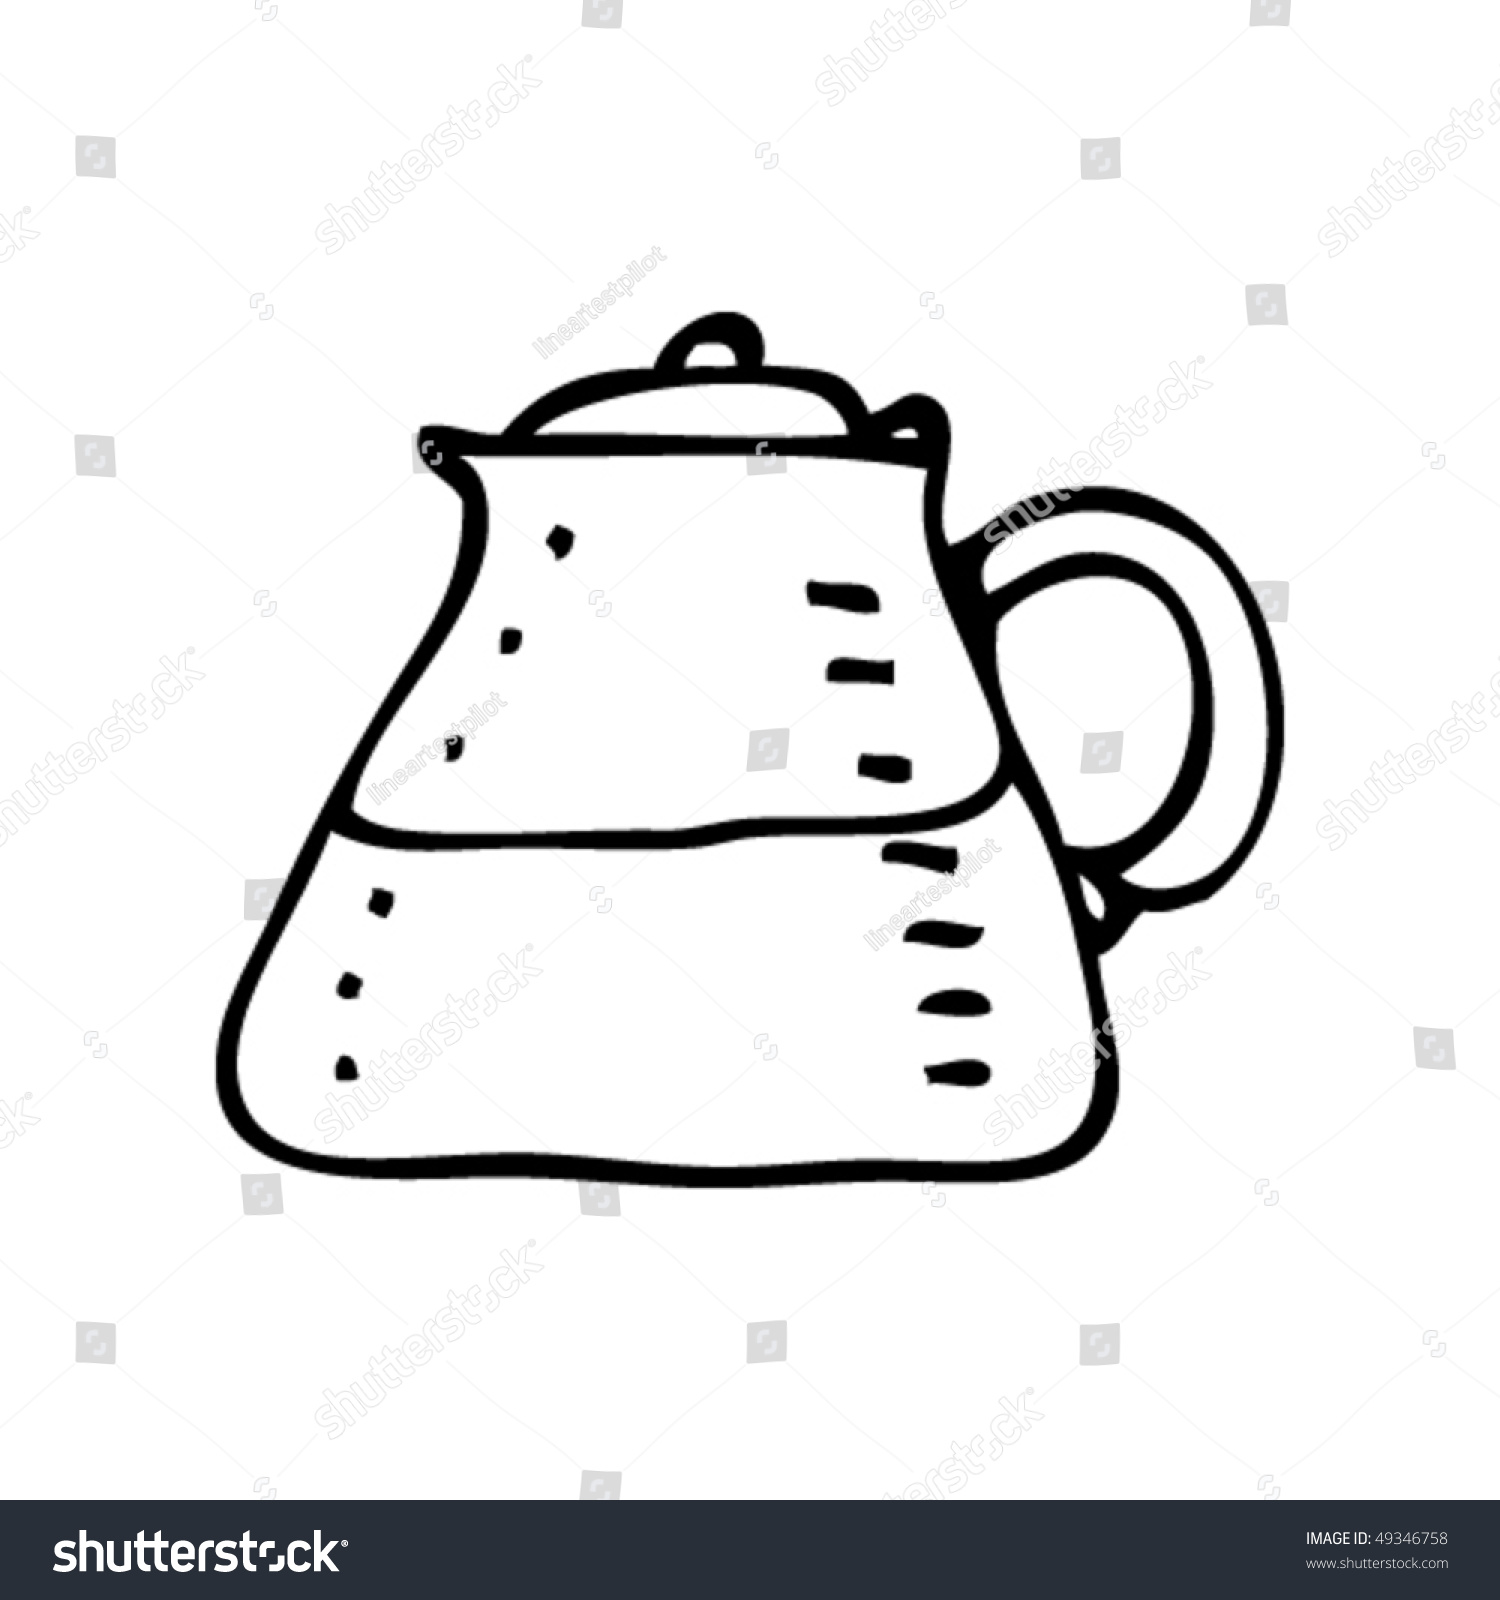 Quirky Drawing Of A Coffee Filter Jug